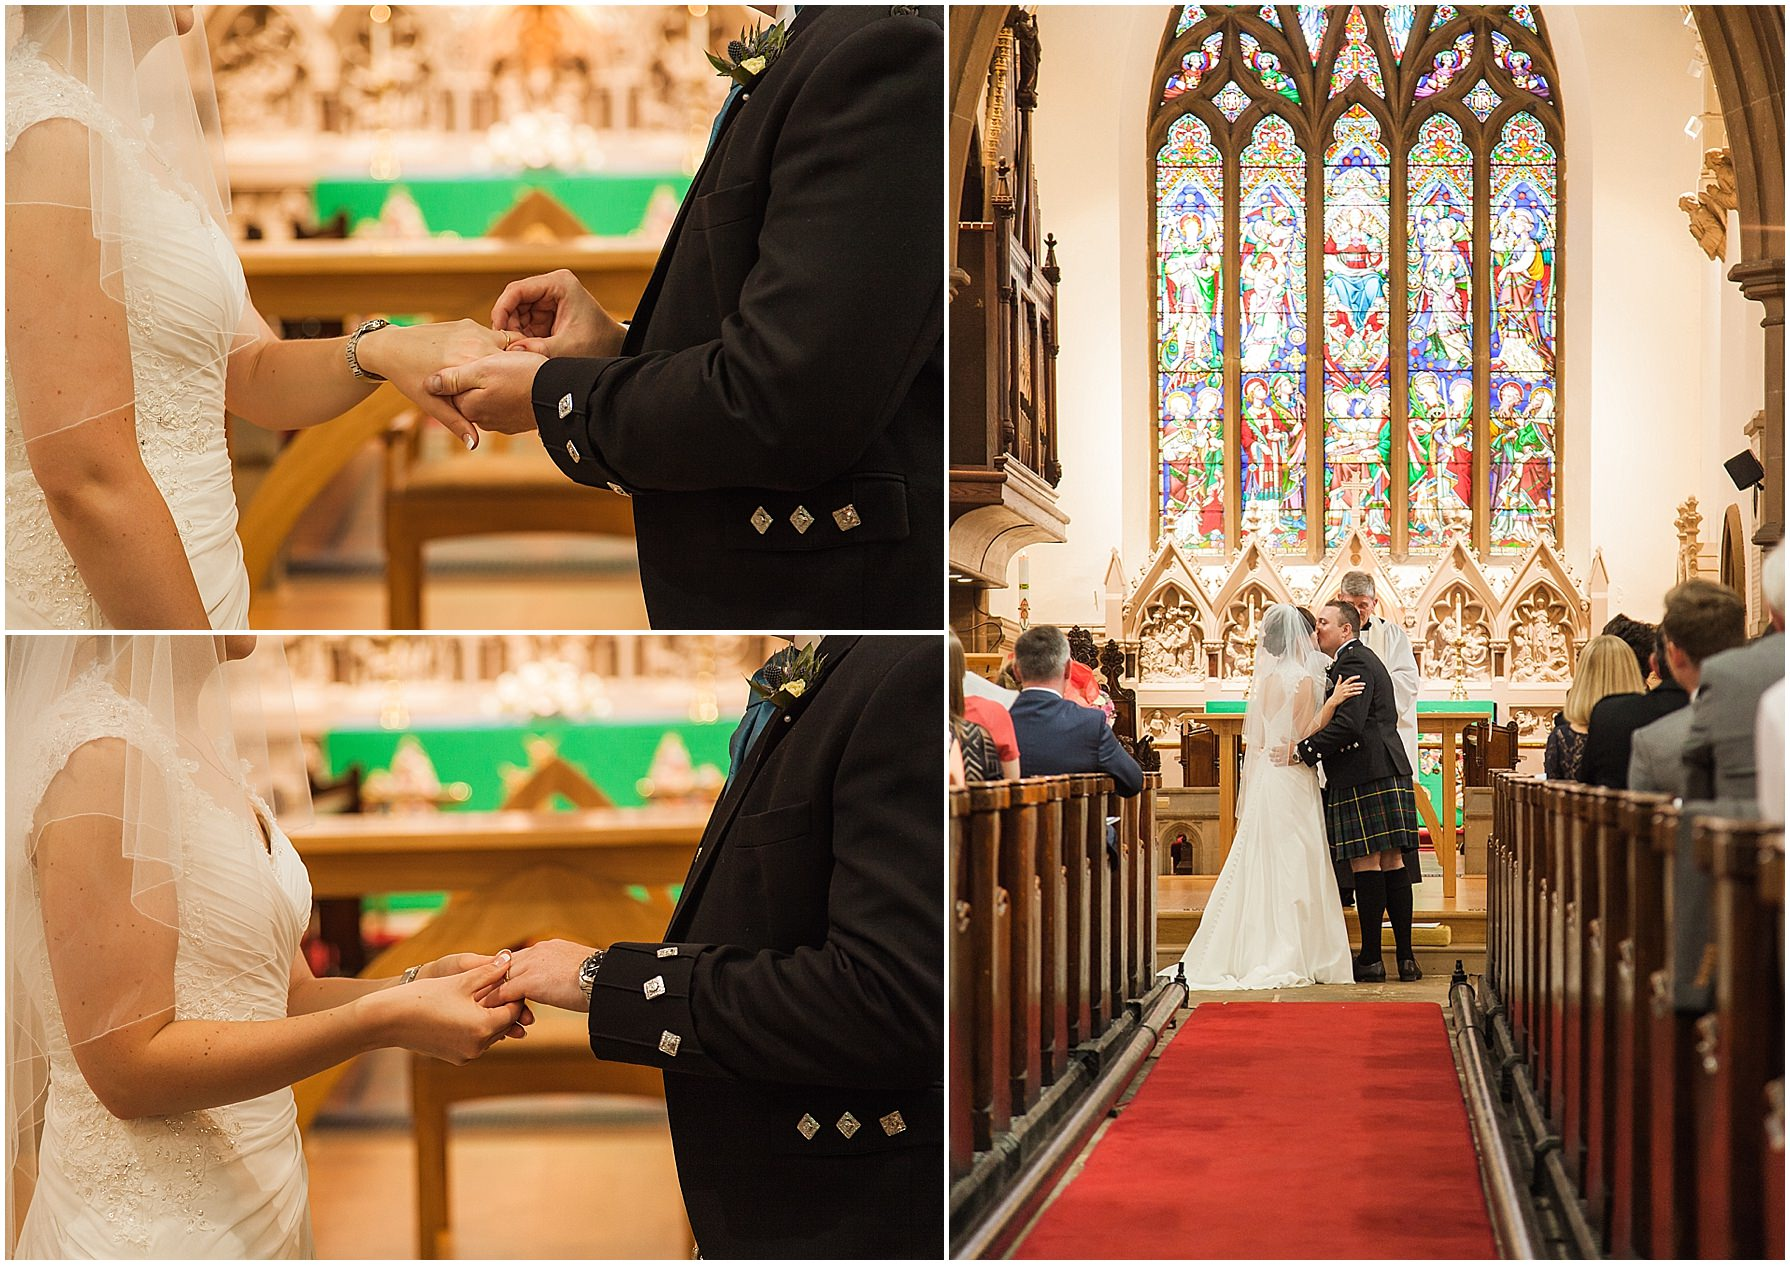 wedding ceremony St Mary's church Lymm